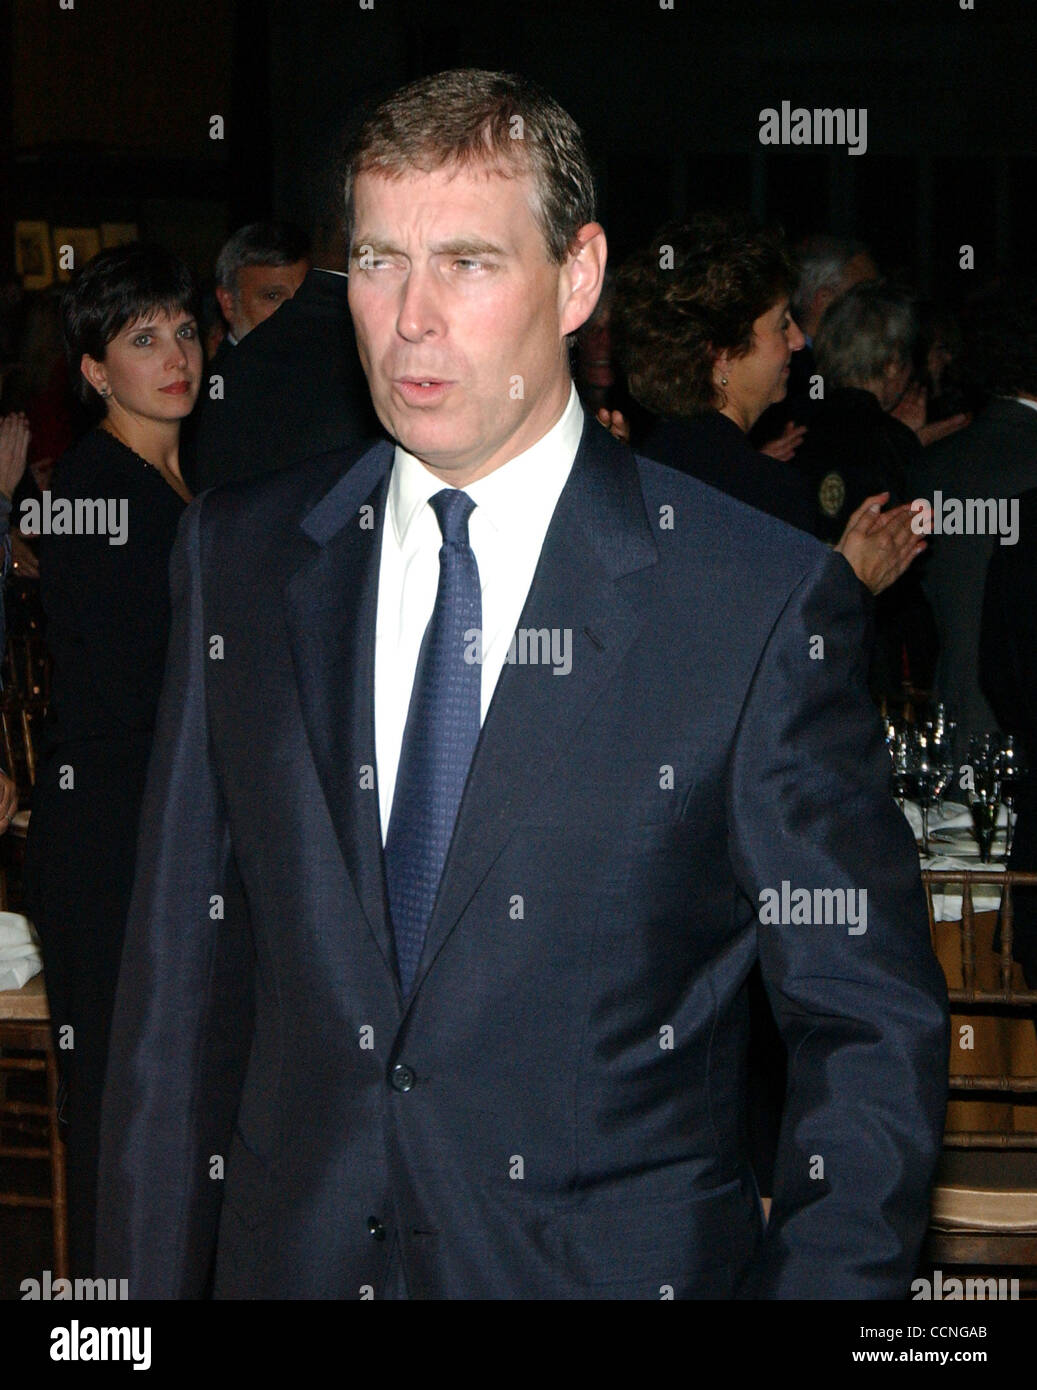 PRINCE ANDREW gave a speach at Columbia University's 250th anniversary dinner. - Stock Image